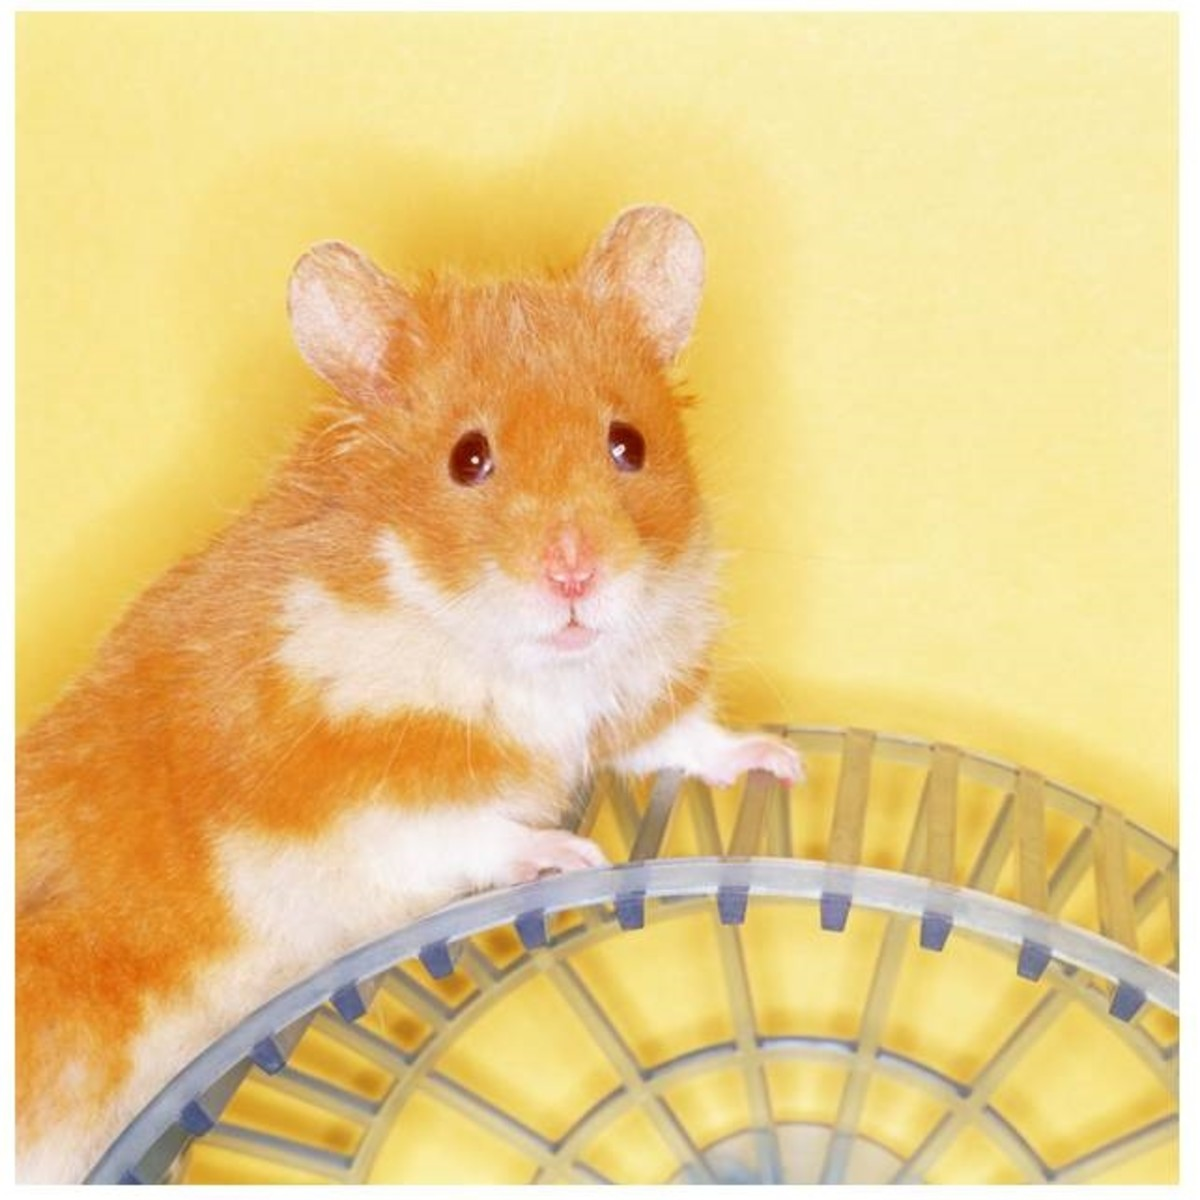 Hamsters are not recommended for classroom pets because they are nocturnal and will not be active during classroom hours.